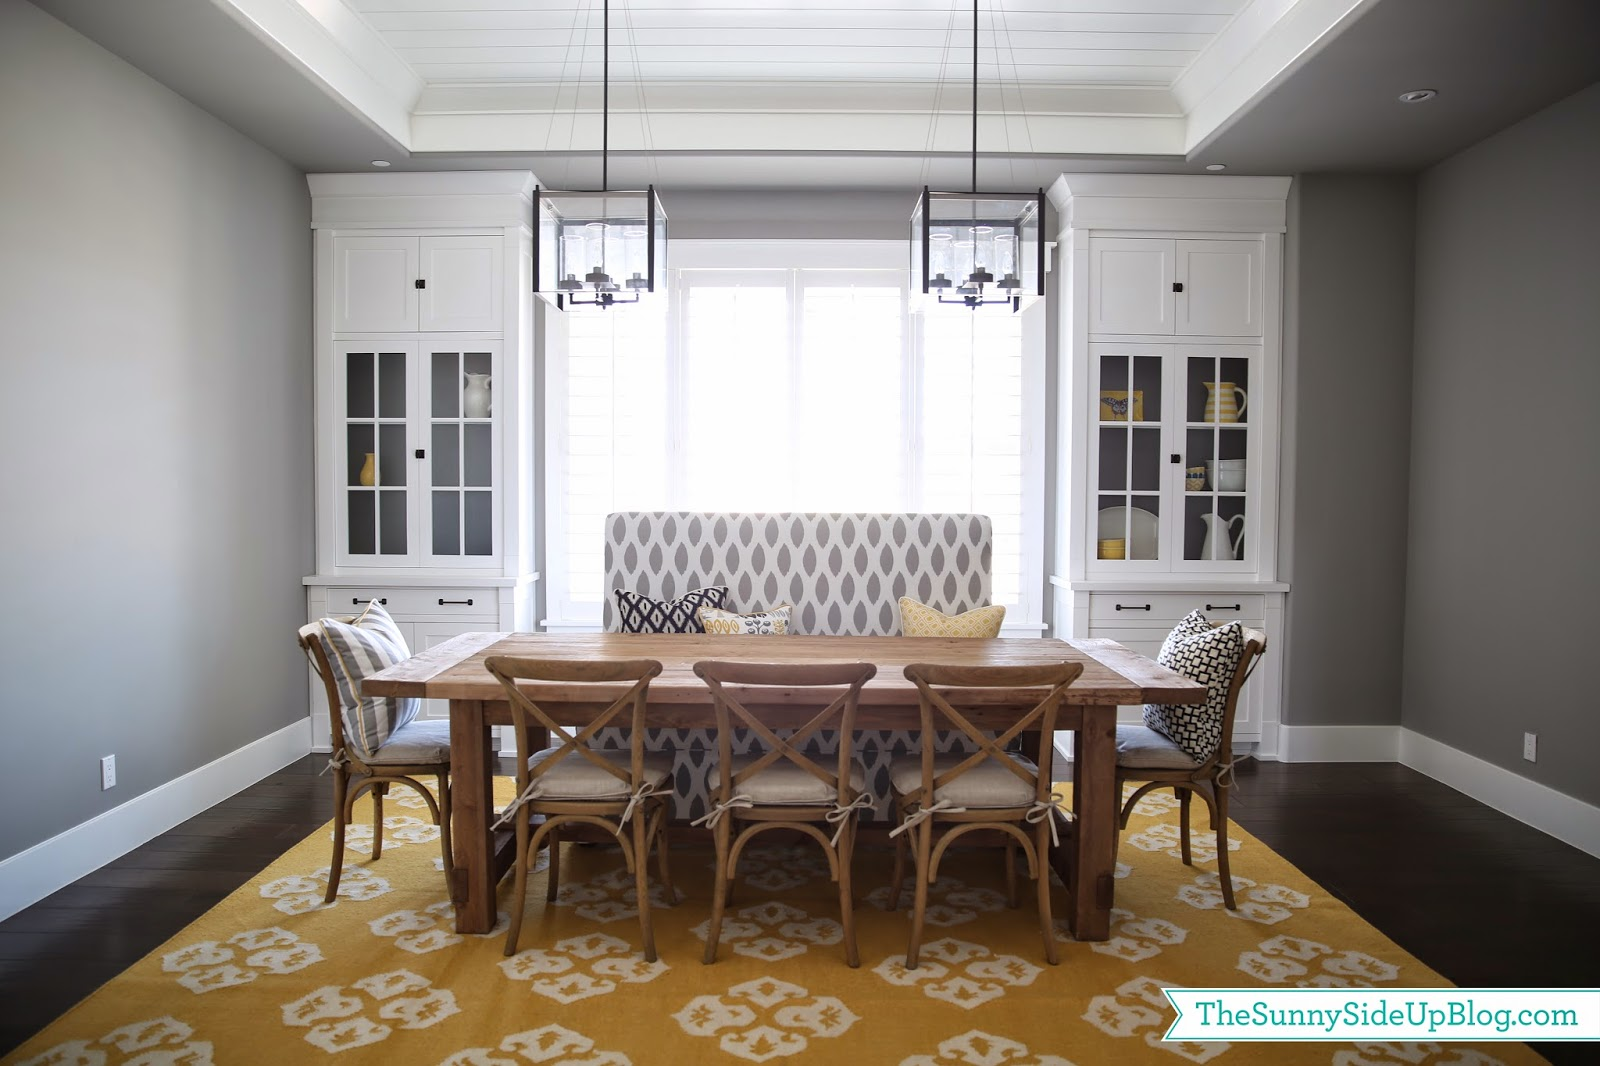 Dining room decor update (bench chairs pillows) & Dining room decor update (bench chairs pillows) - The Sunny Side ...